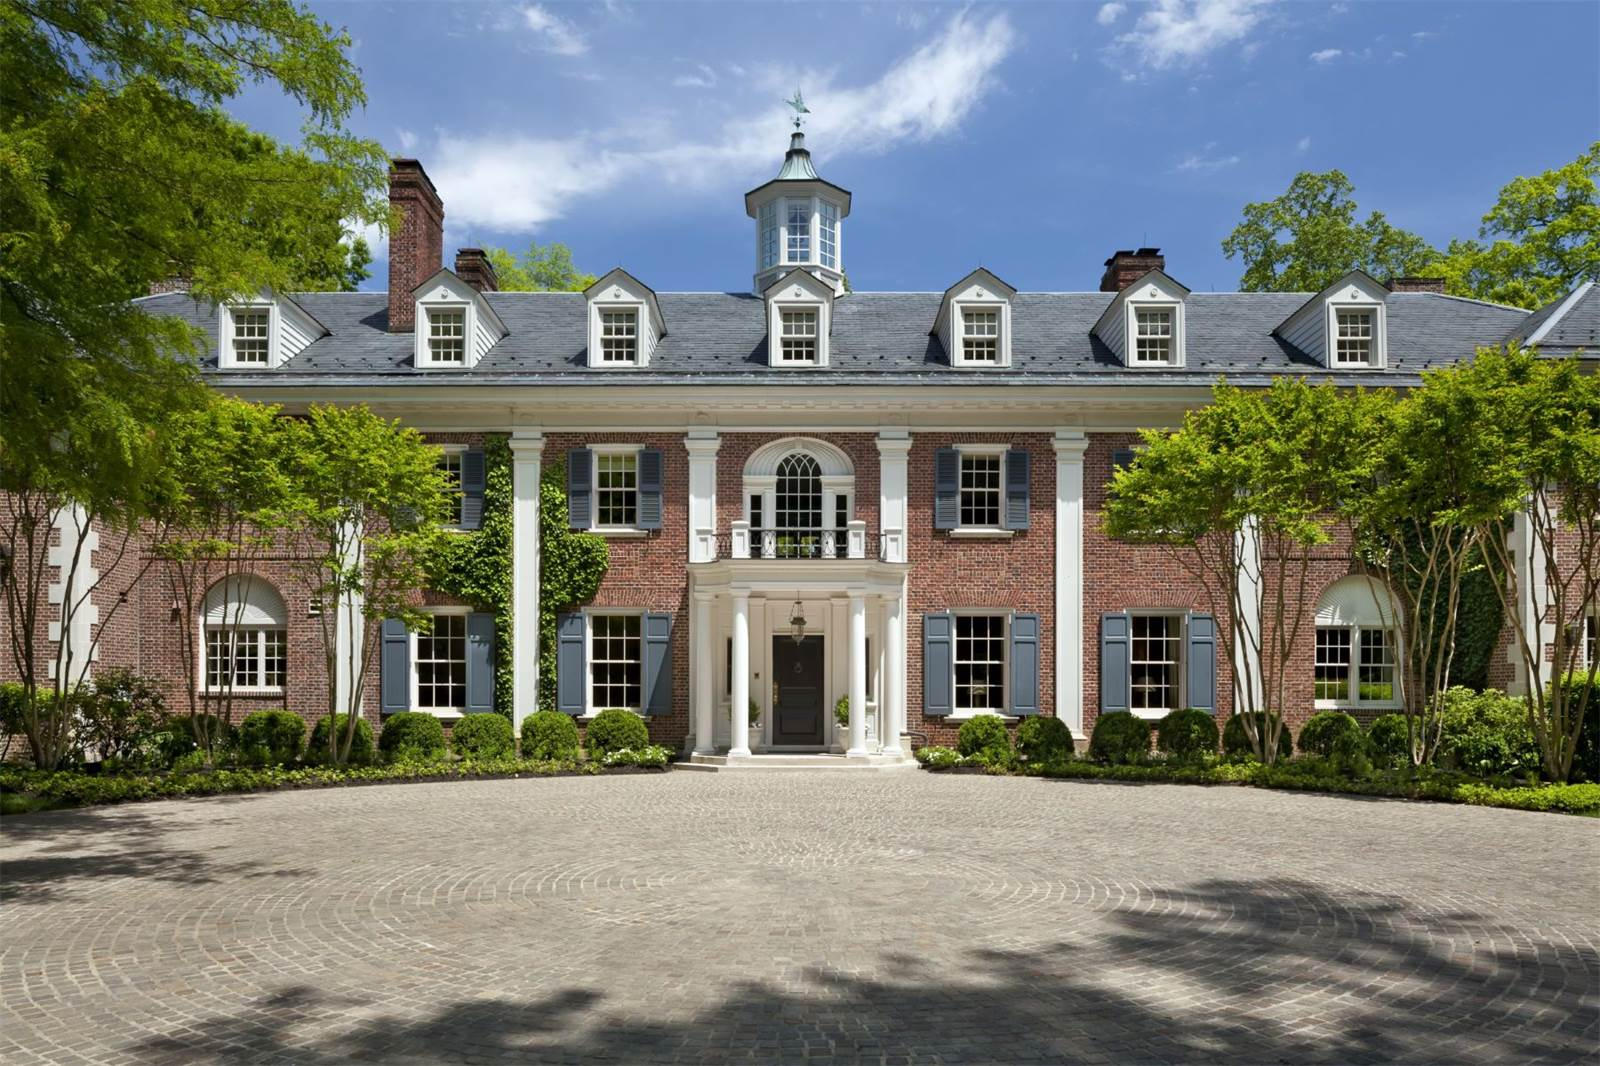 Jacqueline kennedy dc mclean virginia home for sale for Georgian style homes for sale